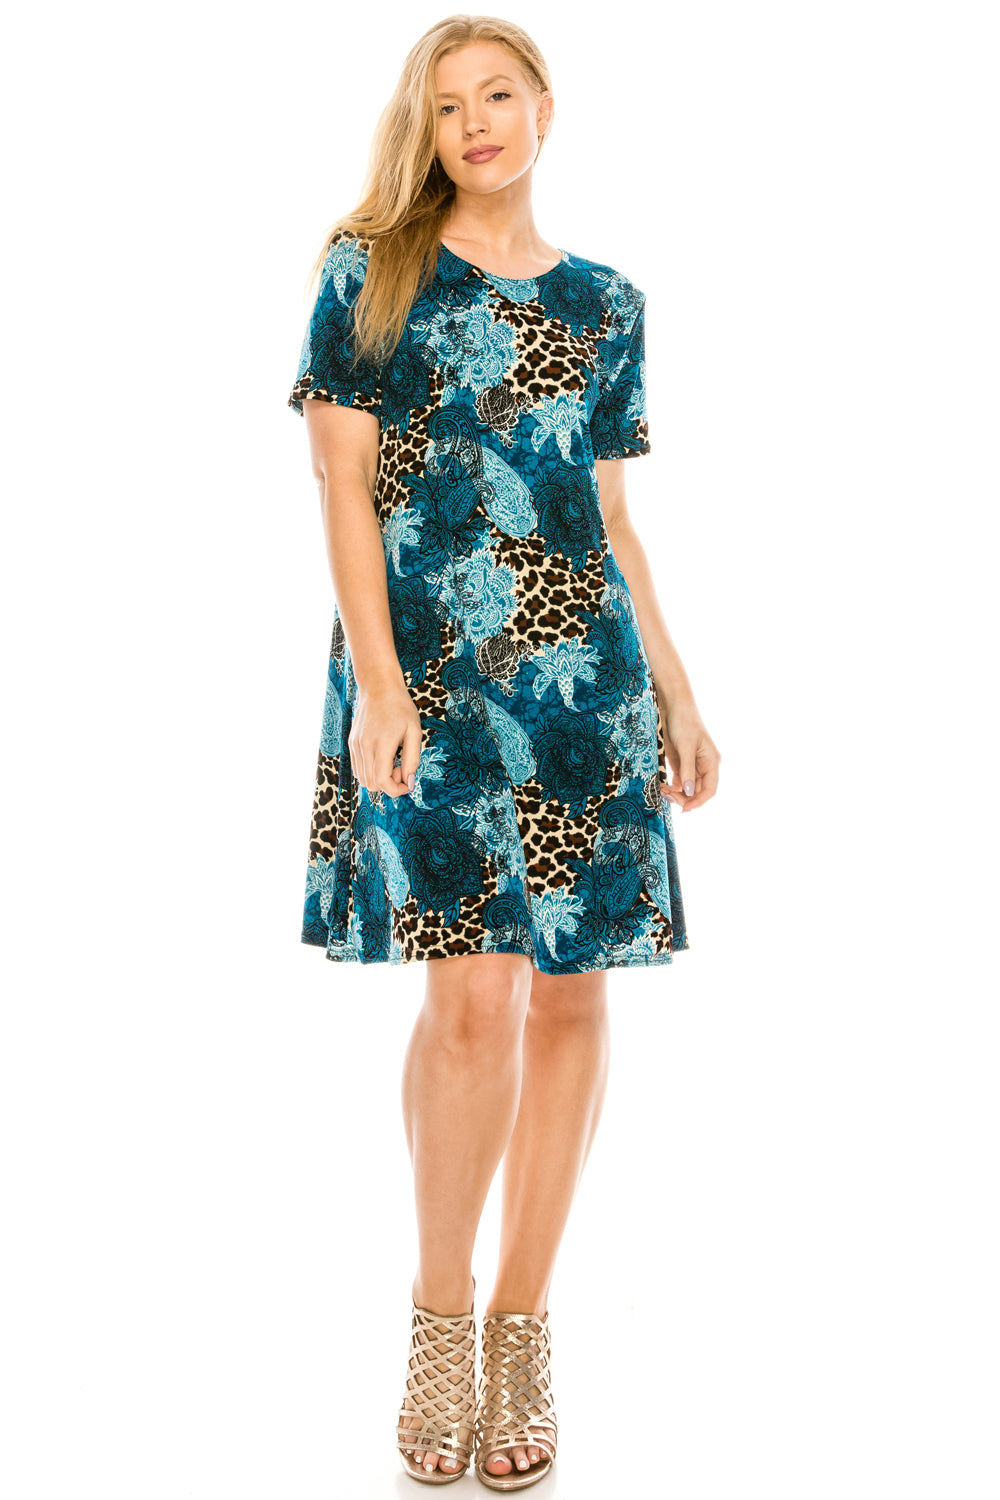 Jostar Women's Stretchy Missy Dress Short Sleeve Print Plus, 704BN-SXP-W188 - Jostar Online